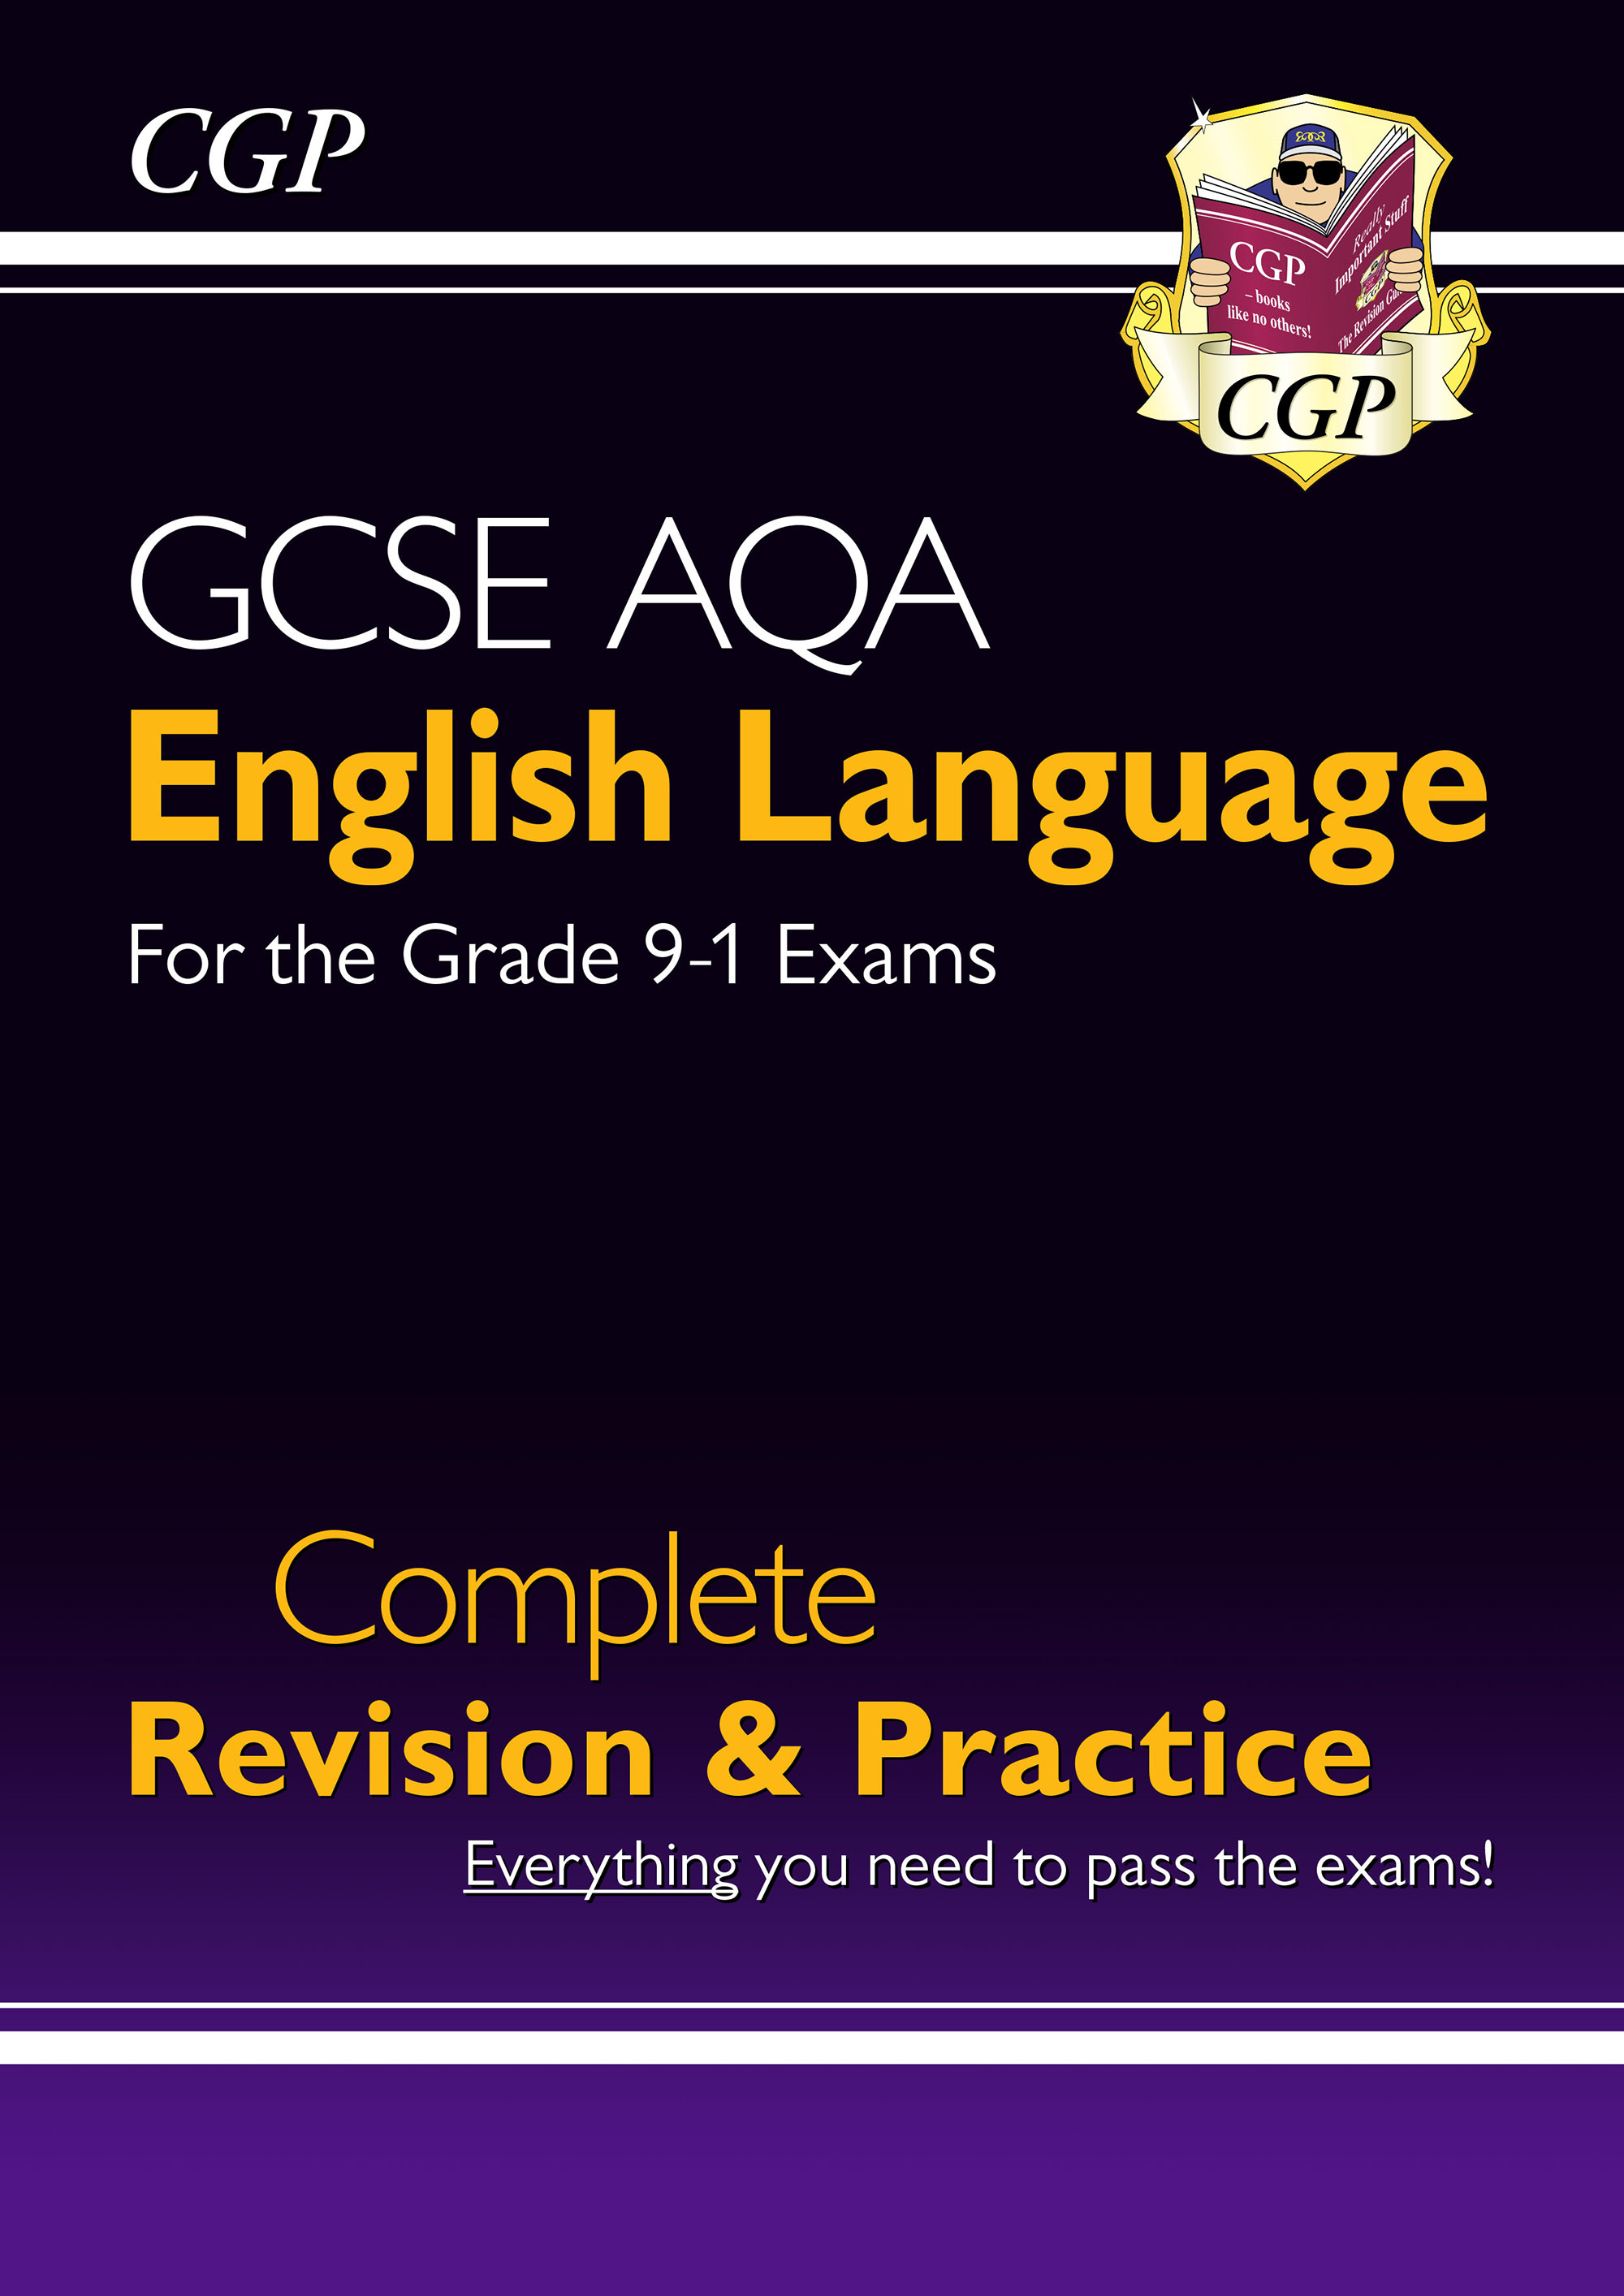 ENAS42DK - GCSE English Language AQA Complete Revision & Practice - for the Grade 9-1 Course